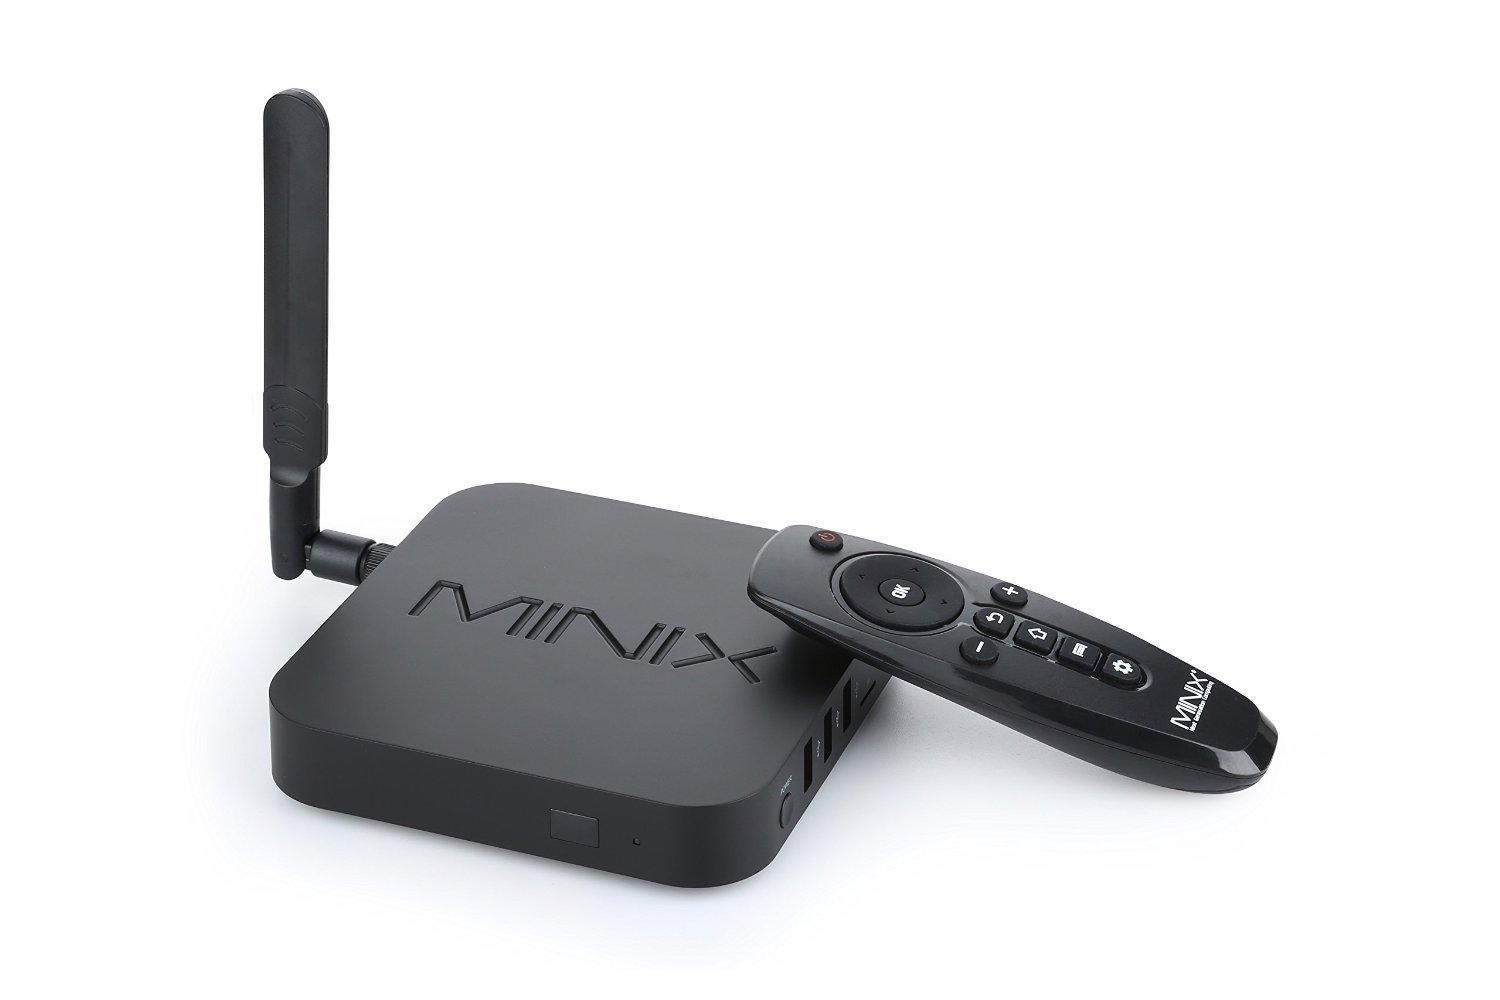 Minix New U1, A solid Christmas Idea For Kodi